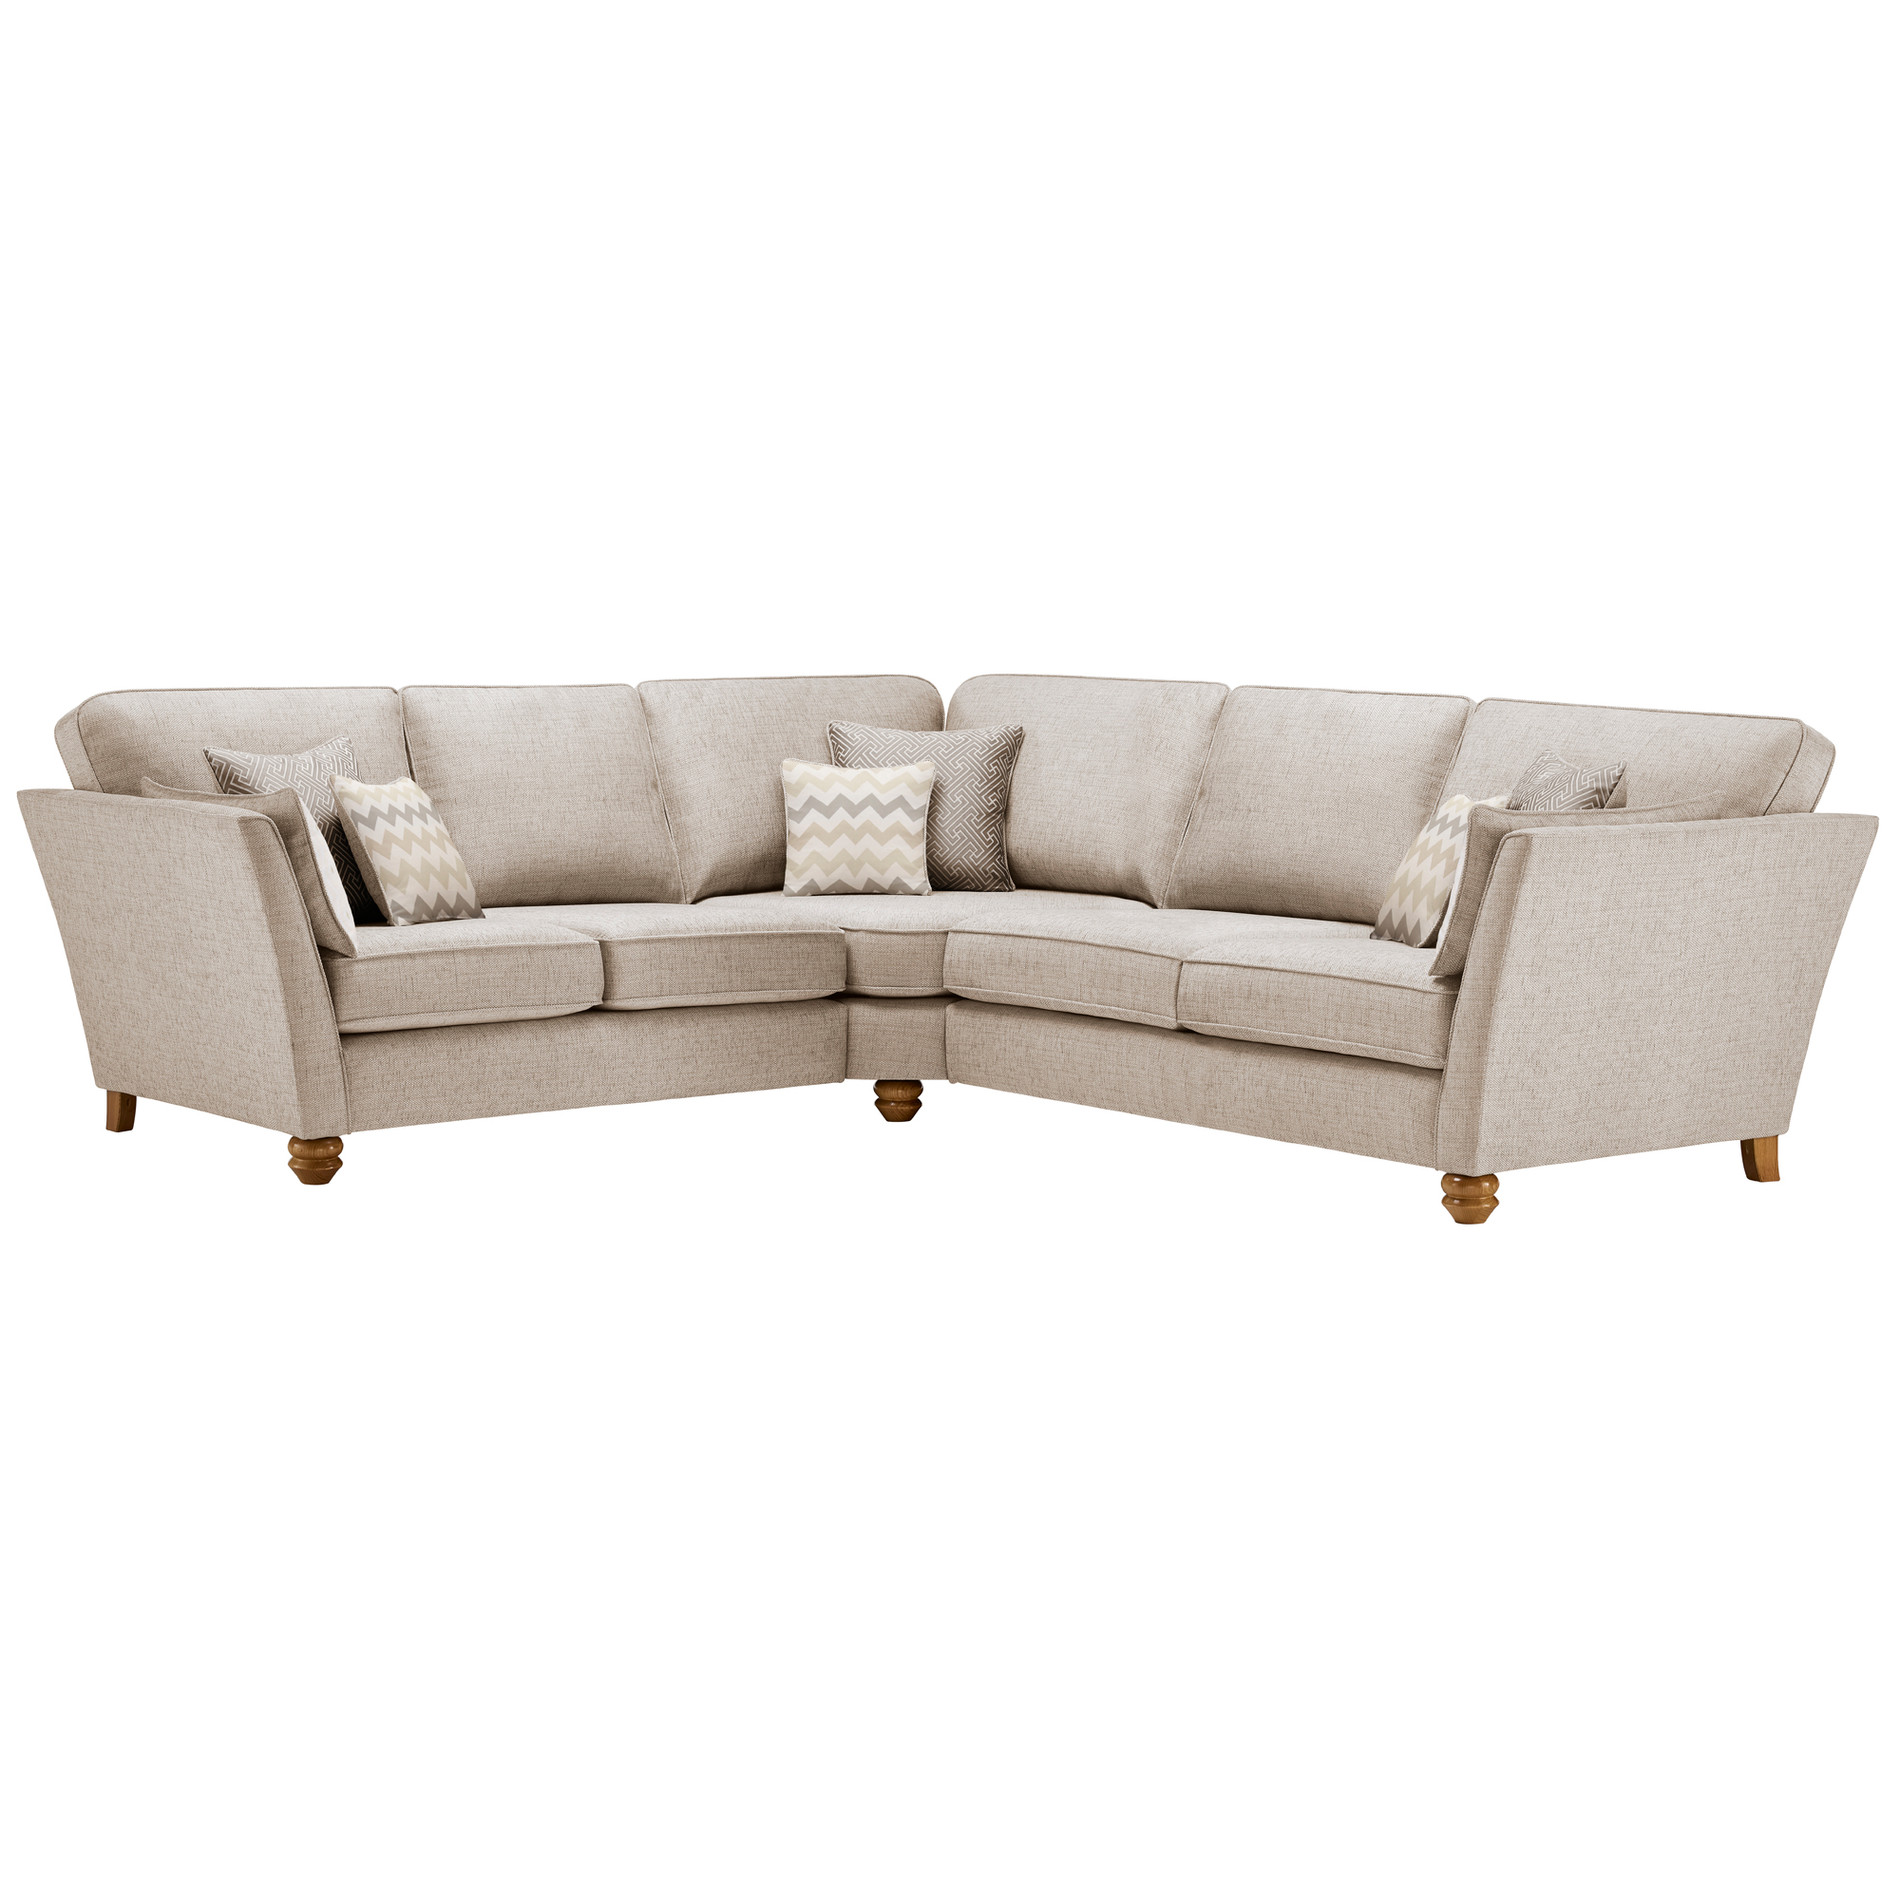 Gainsborough Corner Sofa in Beige Beige Scatters